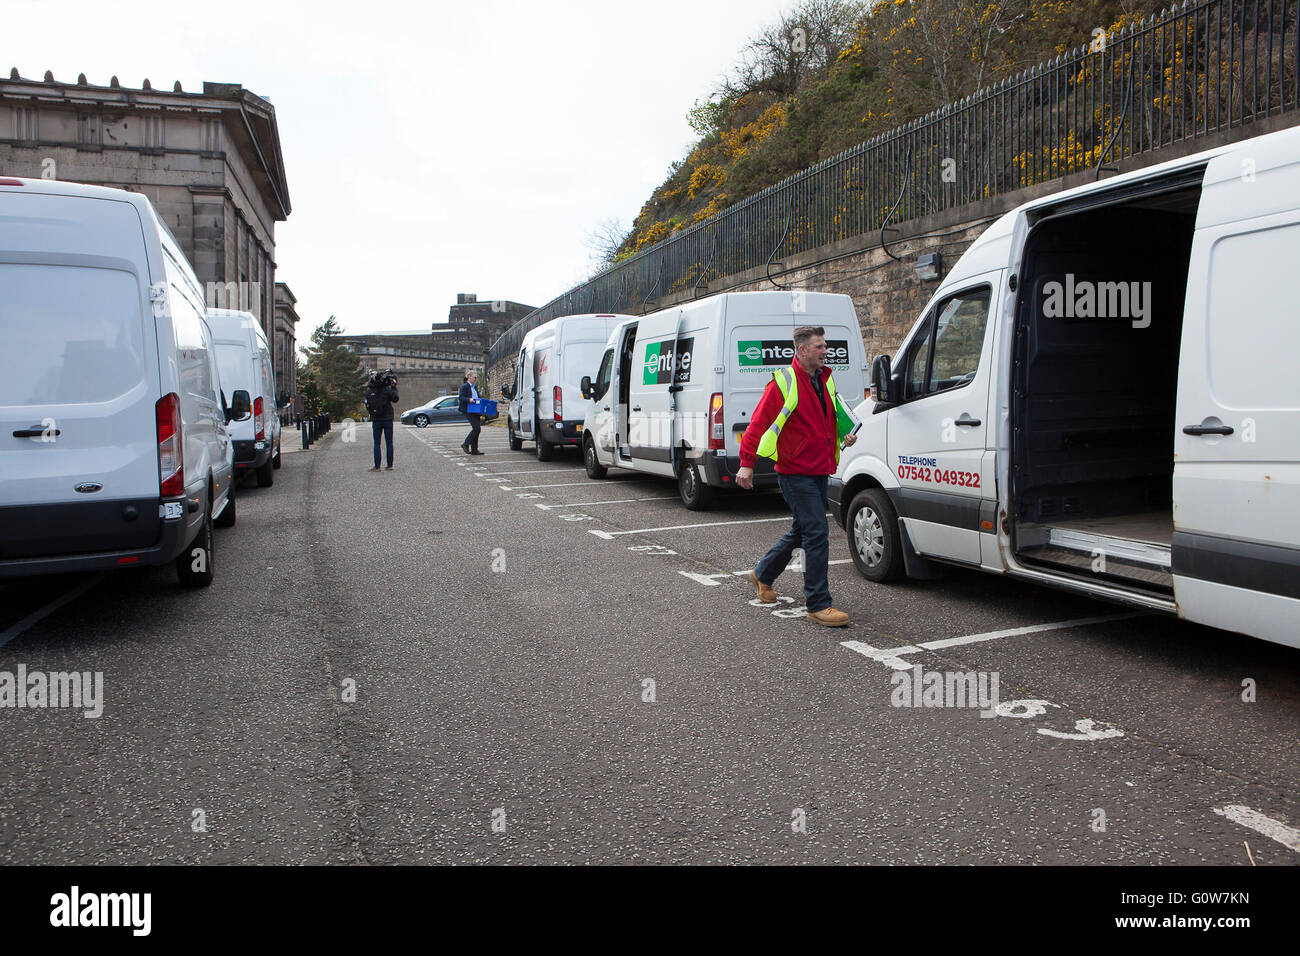 Edinburgh, Scotland UK. 4th May 2016. Ballot boxes to be used for voting in the Scottish Parliament Election are - Stock Image